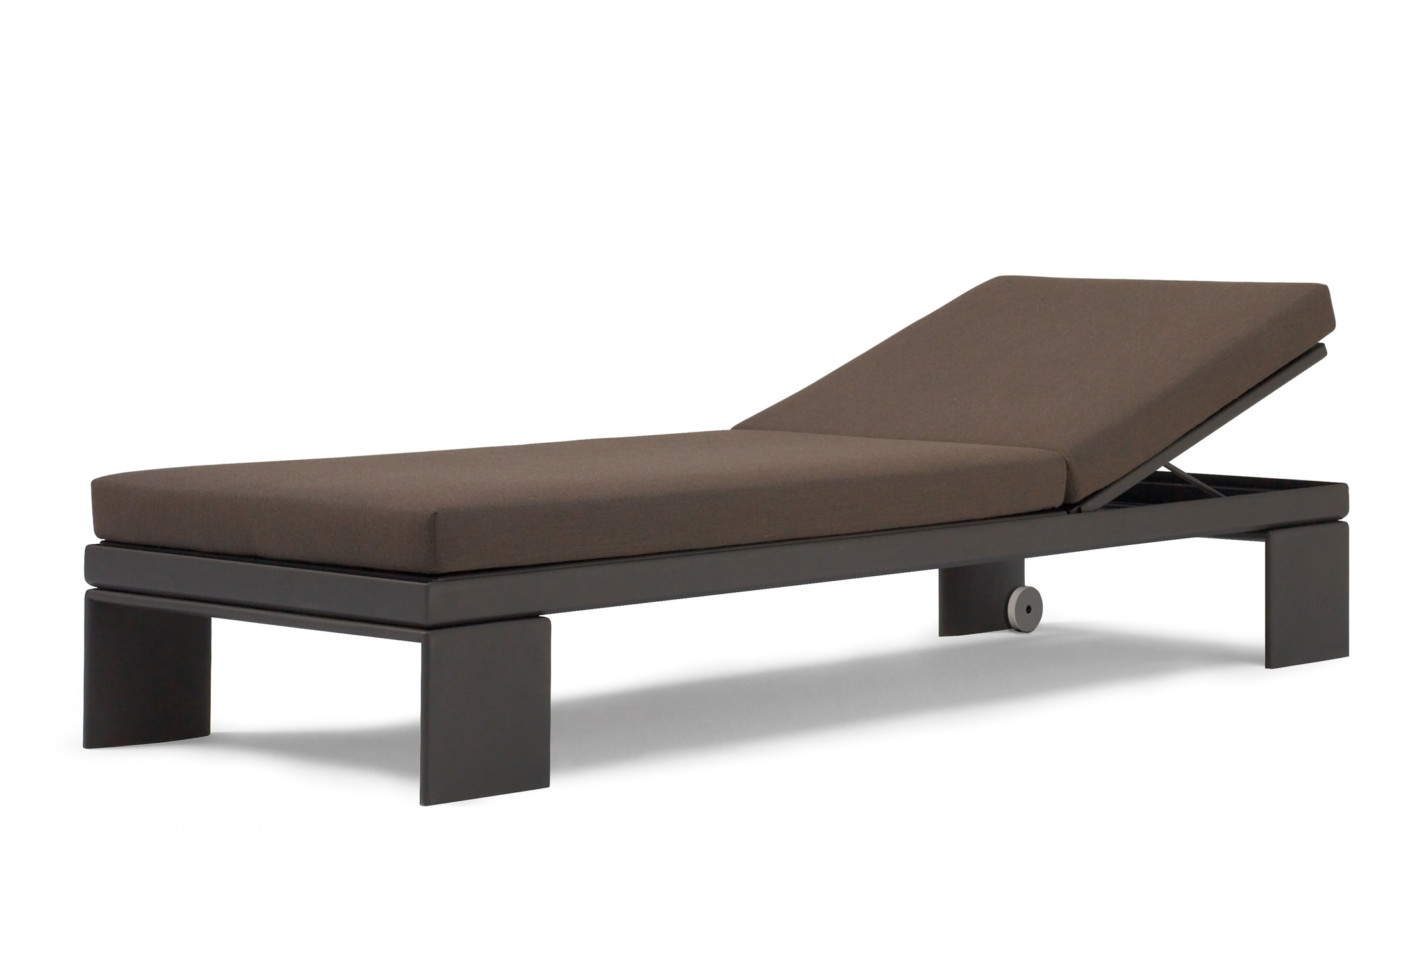 landscape alu chaise longue by andreu world stylepark. Black Bedroom Furniture Sets. Home Design Ideas